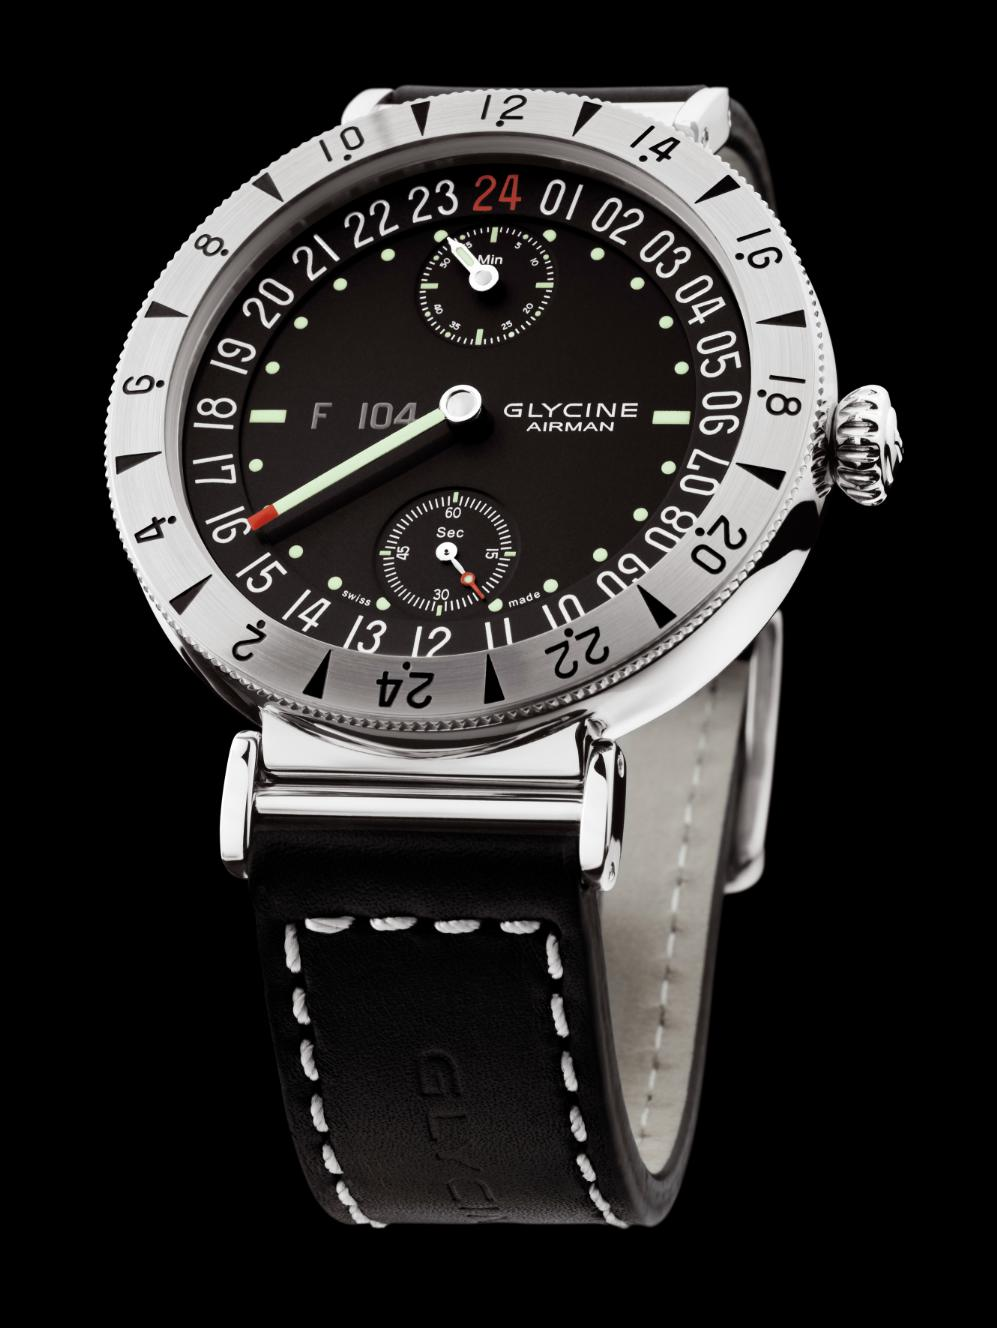 Glycine Airman F104 Regulator